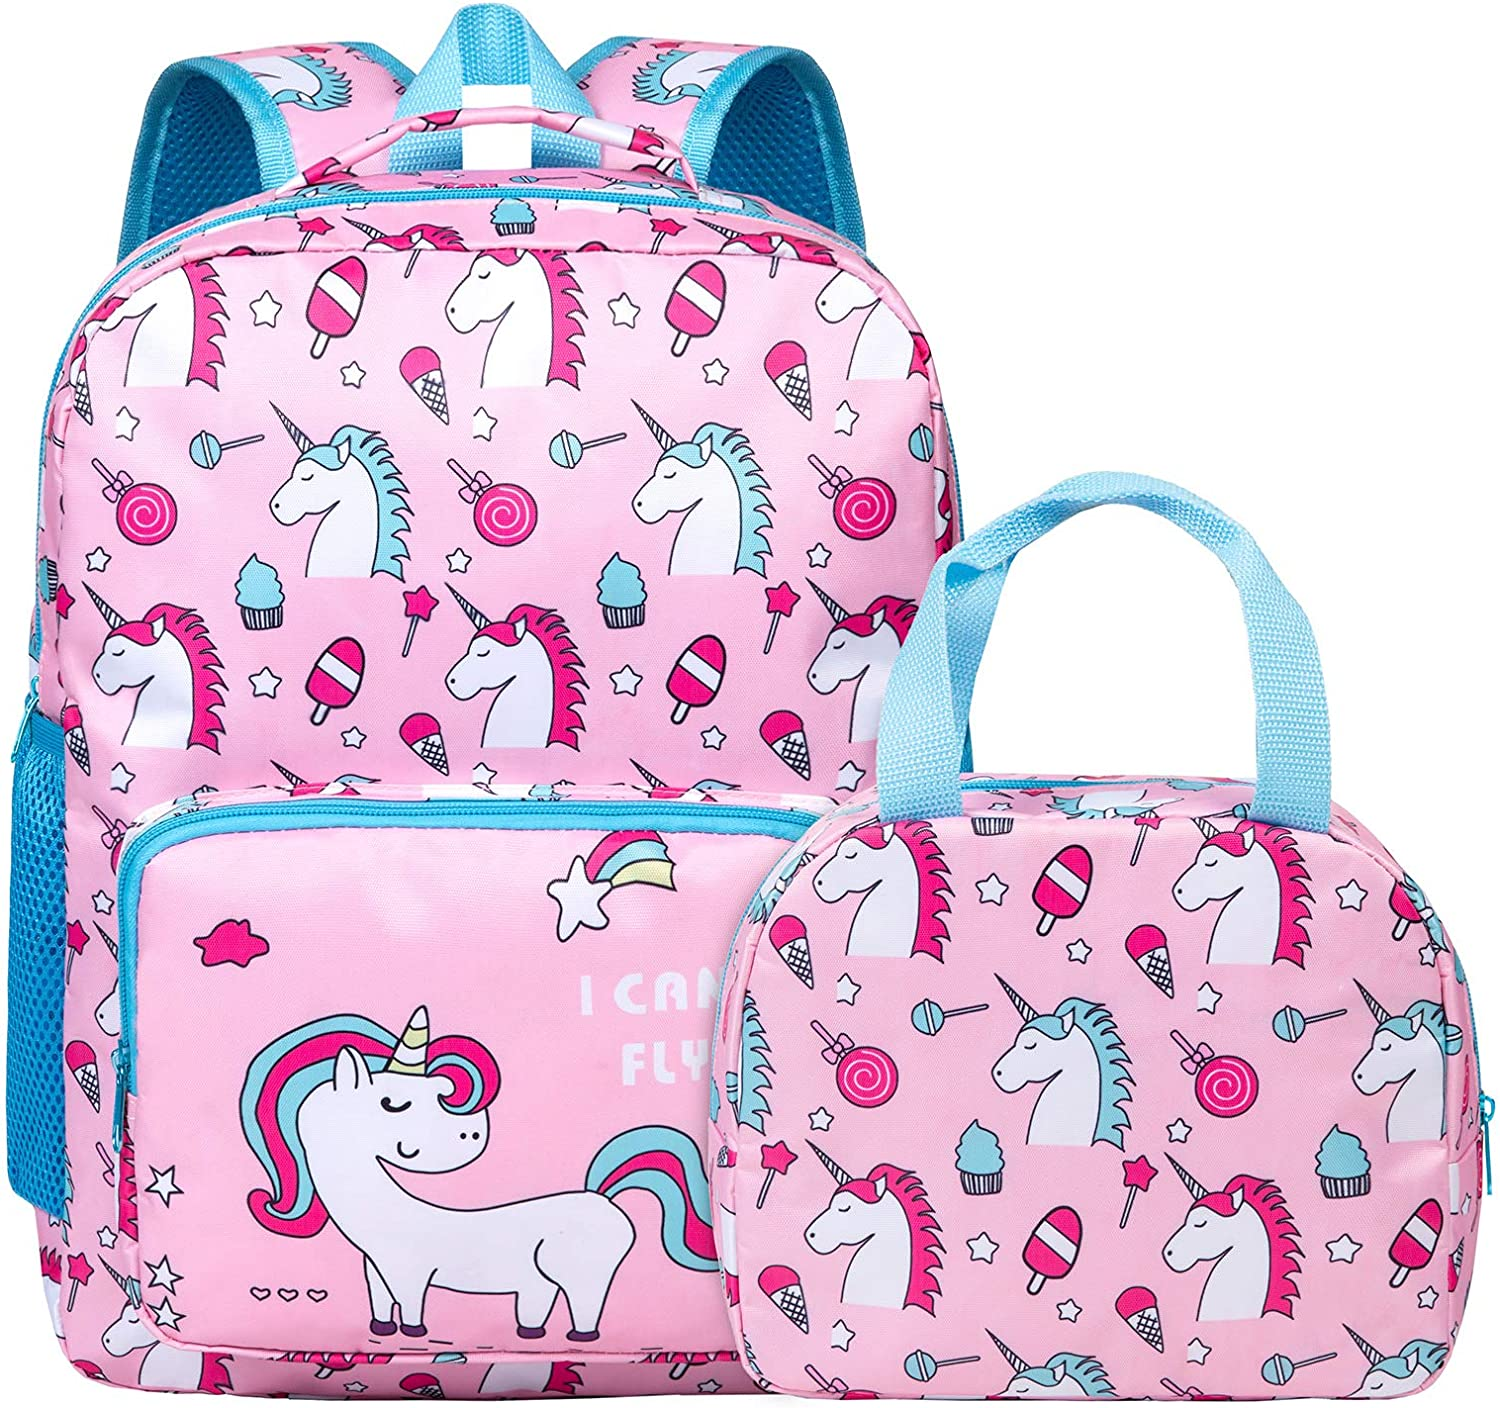 Midnight Unicorn Backpack in pink and blue unicorn sports bag suitable as a girls school bag unicorn carry all or as a unicorn laptop bag